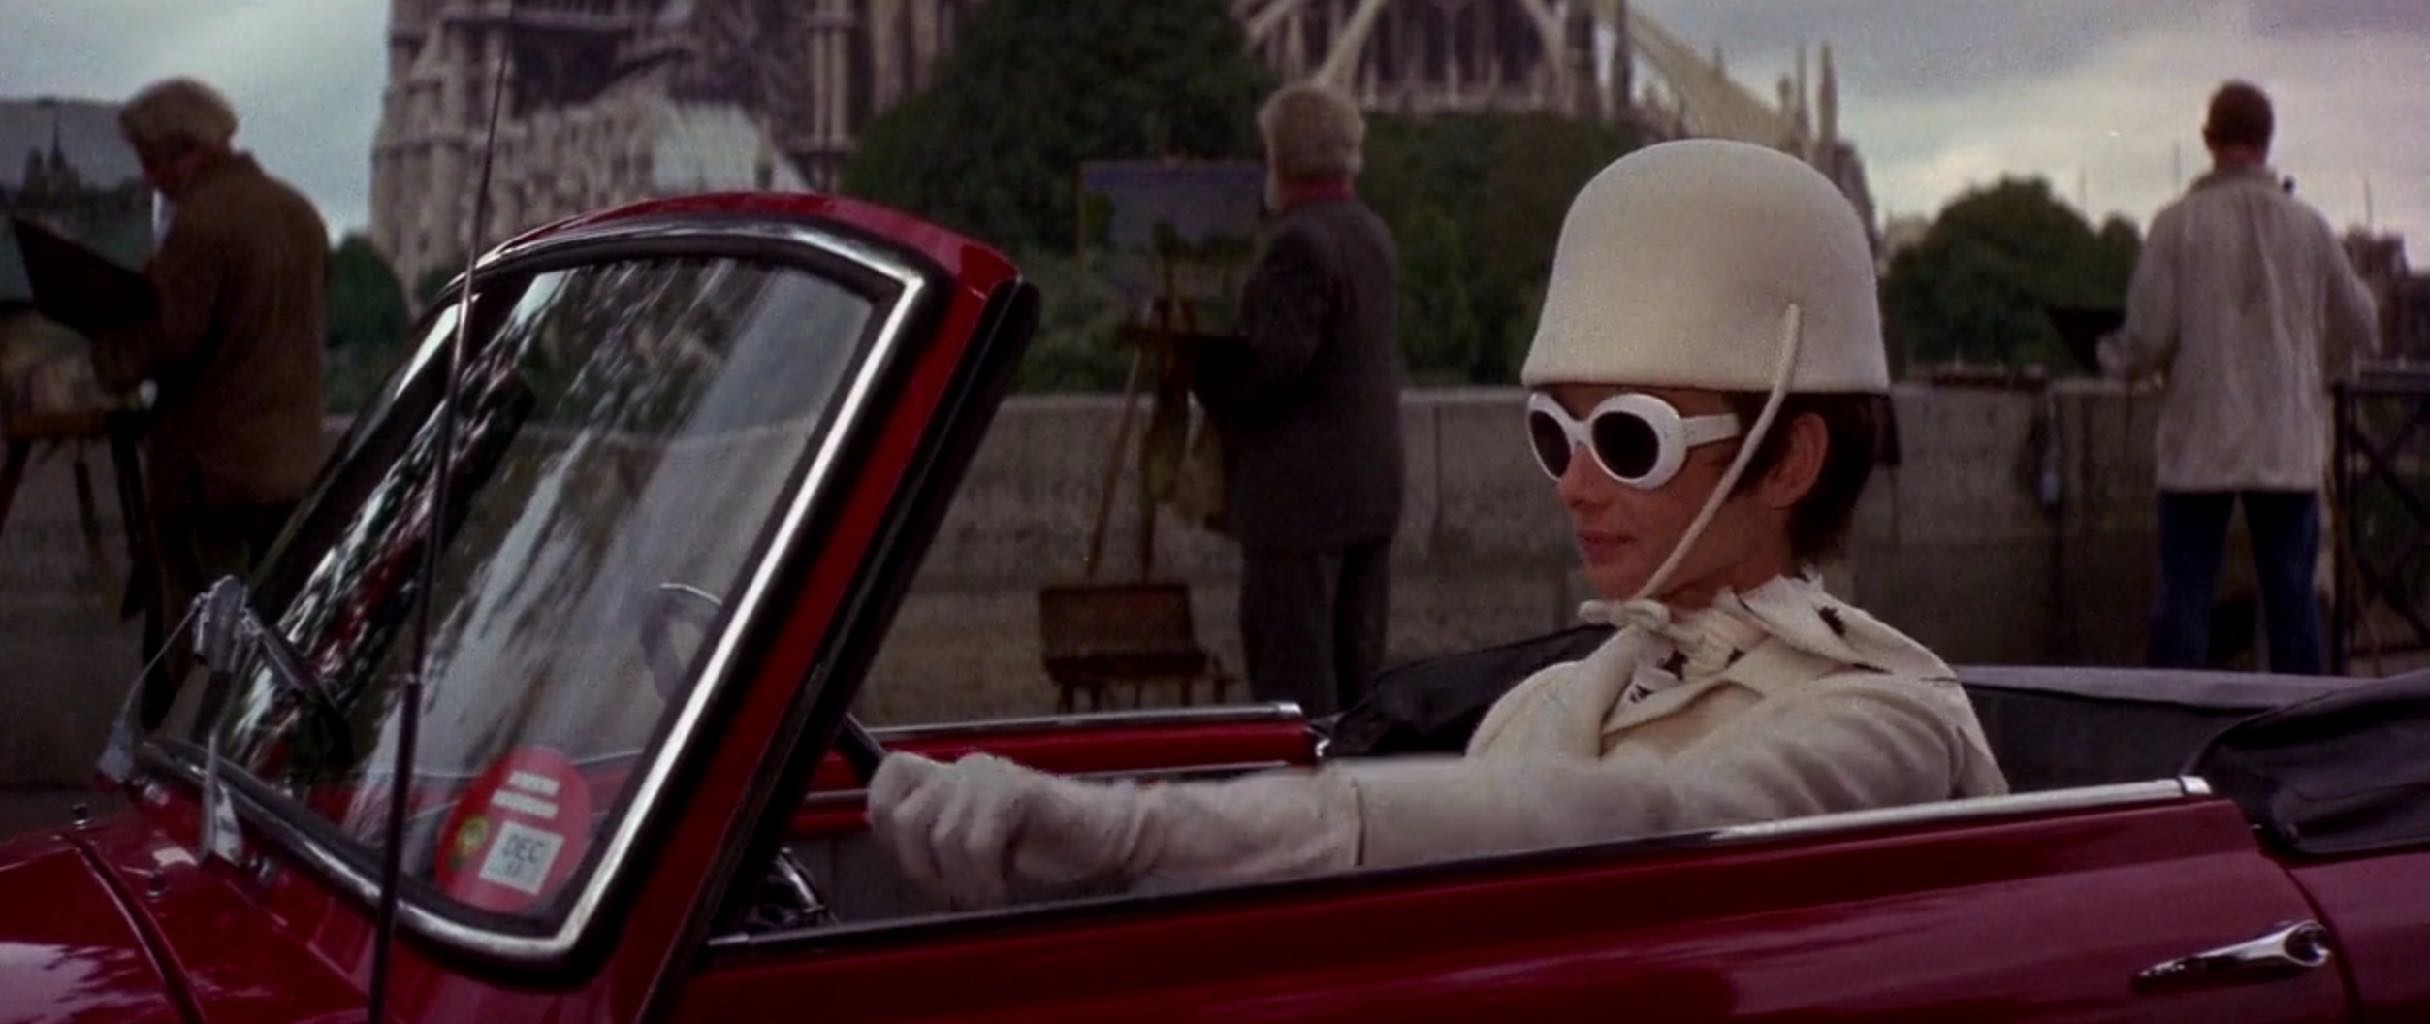 Audrey Hepburn driving through Paris wearing Givenchy in 'How to Steal a Million.' Photo